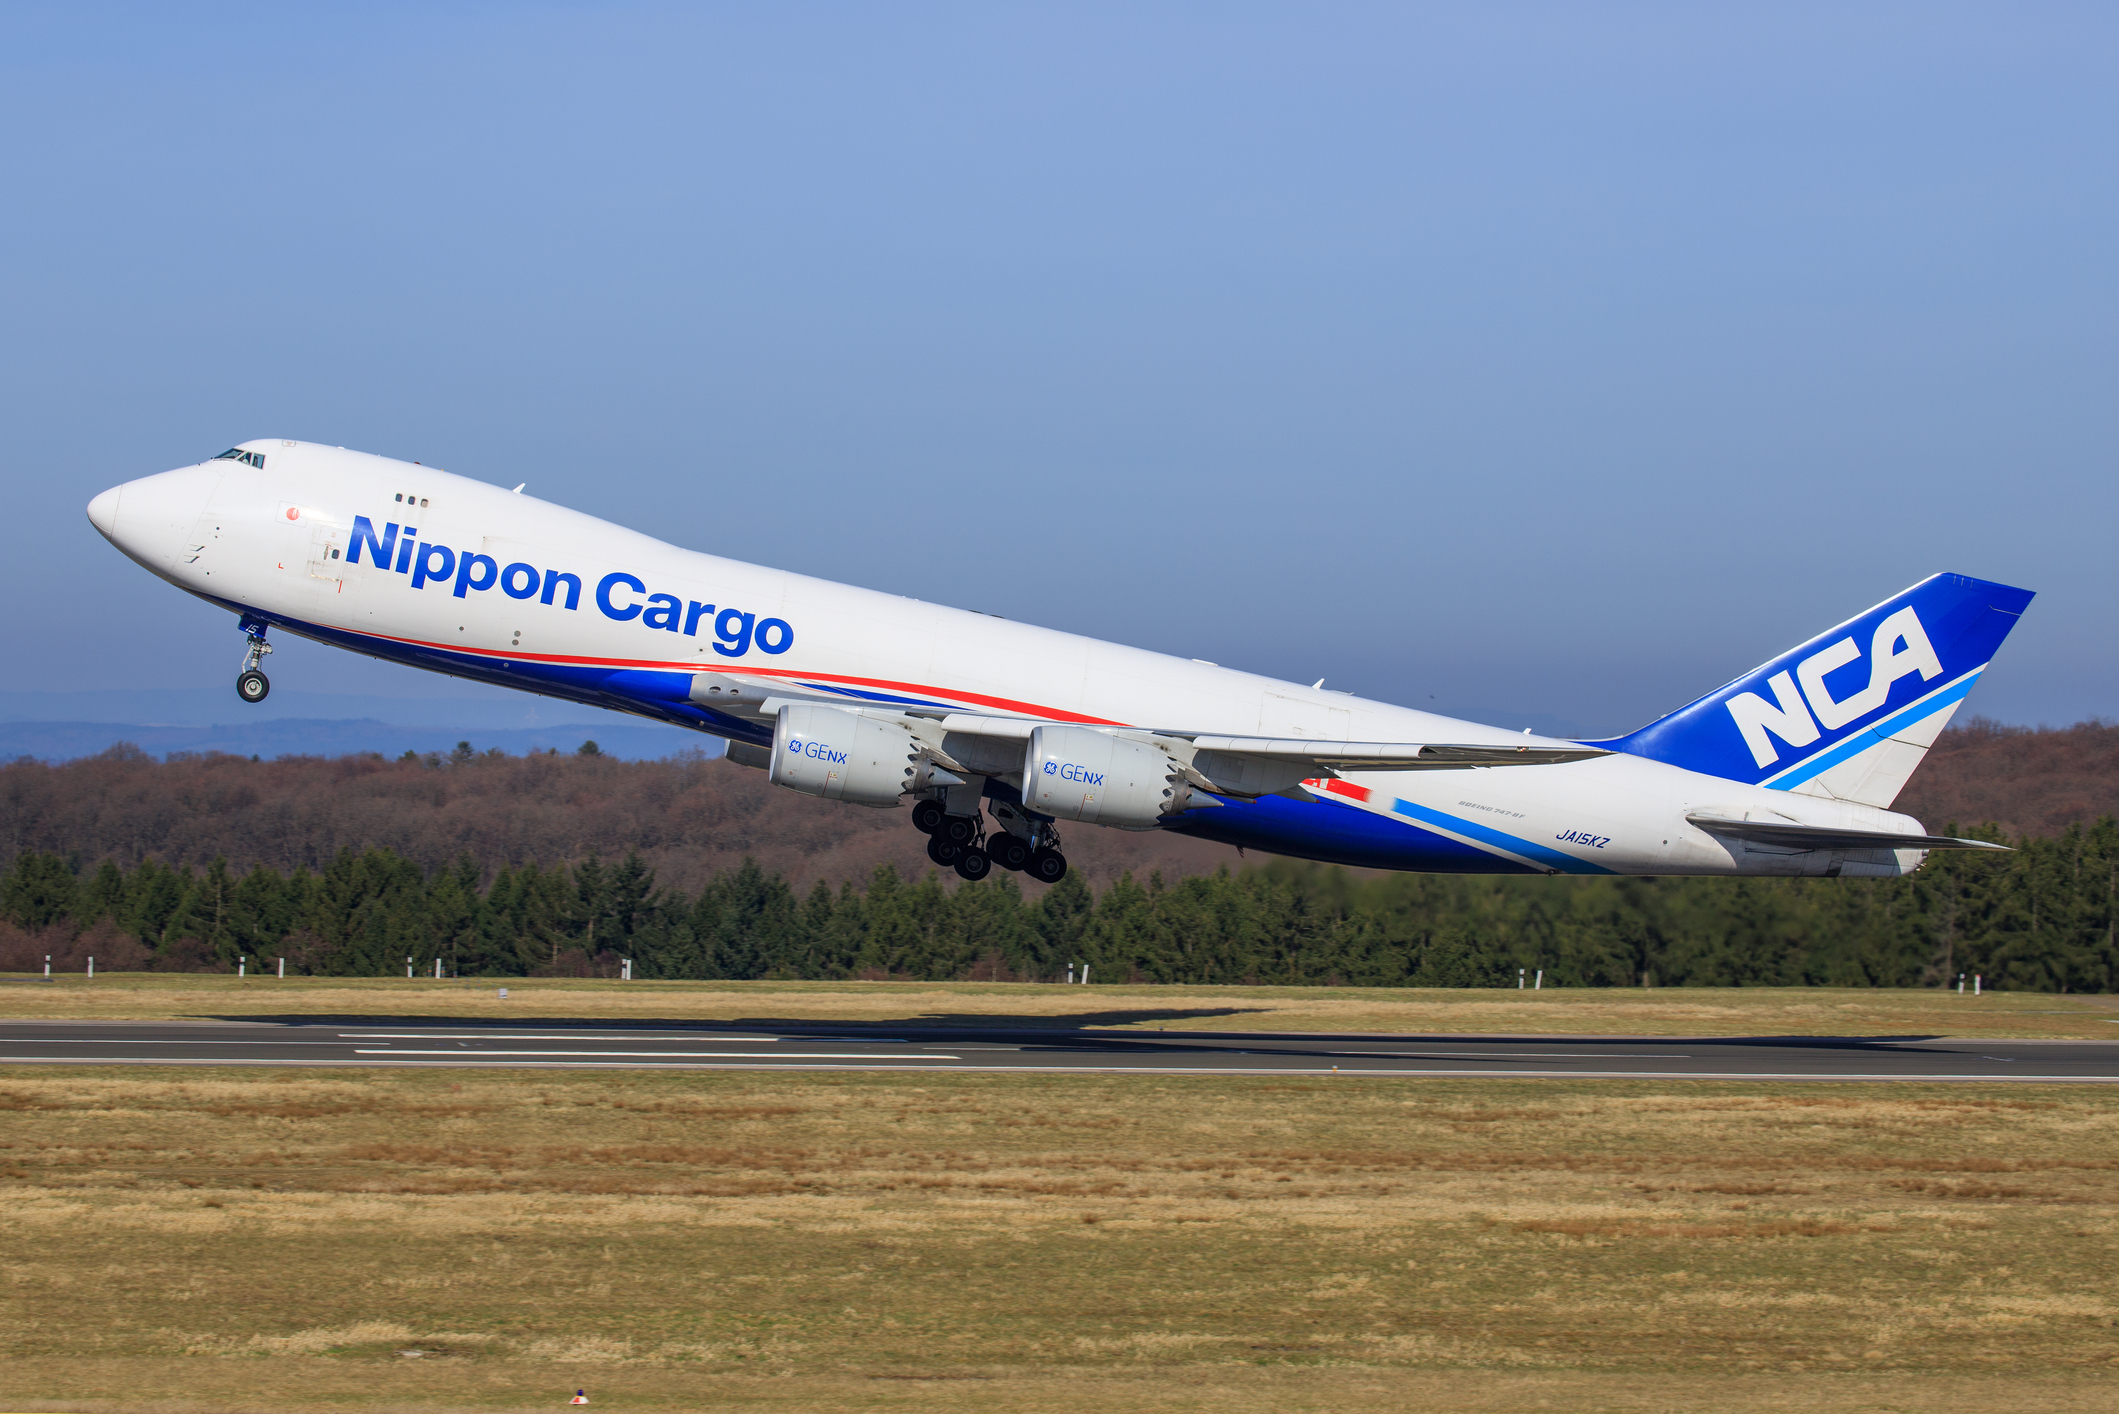 © Mike Fuchslocher | nippon cargo airlines NCA